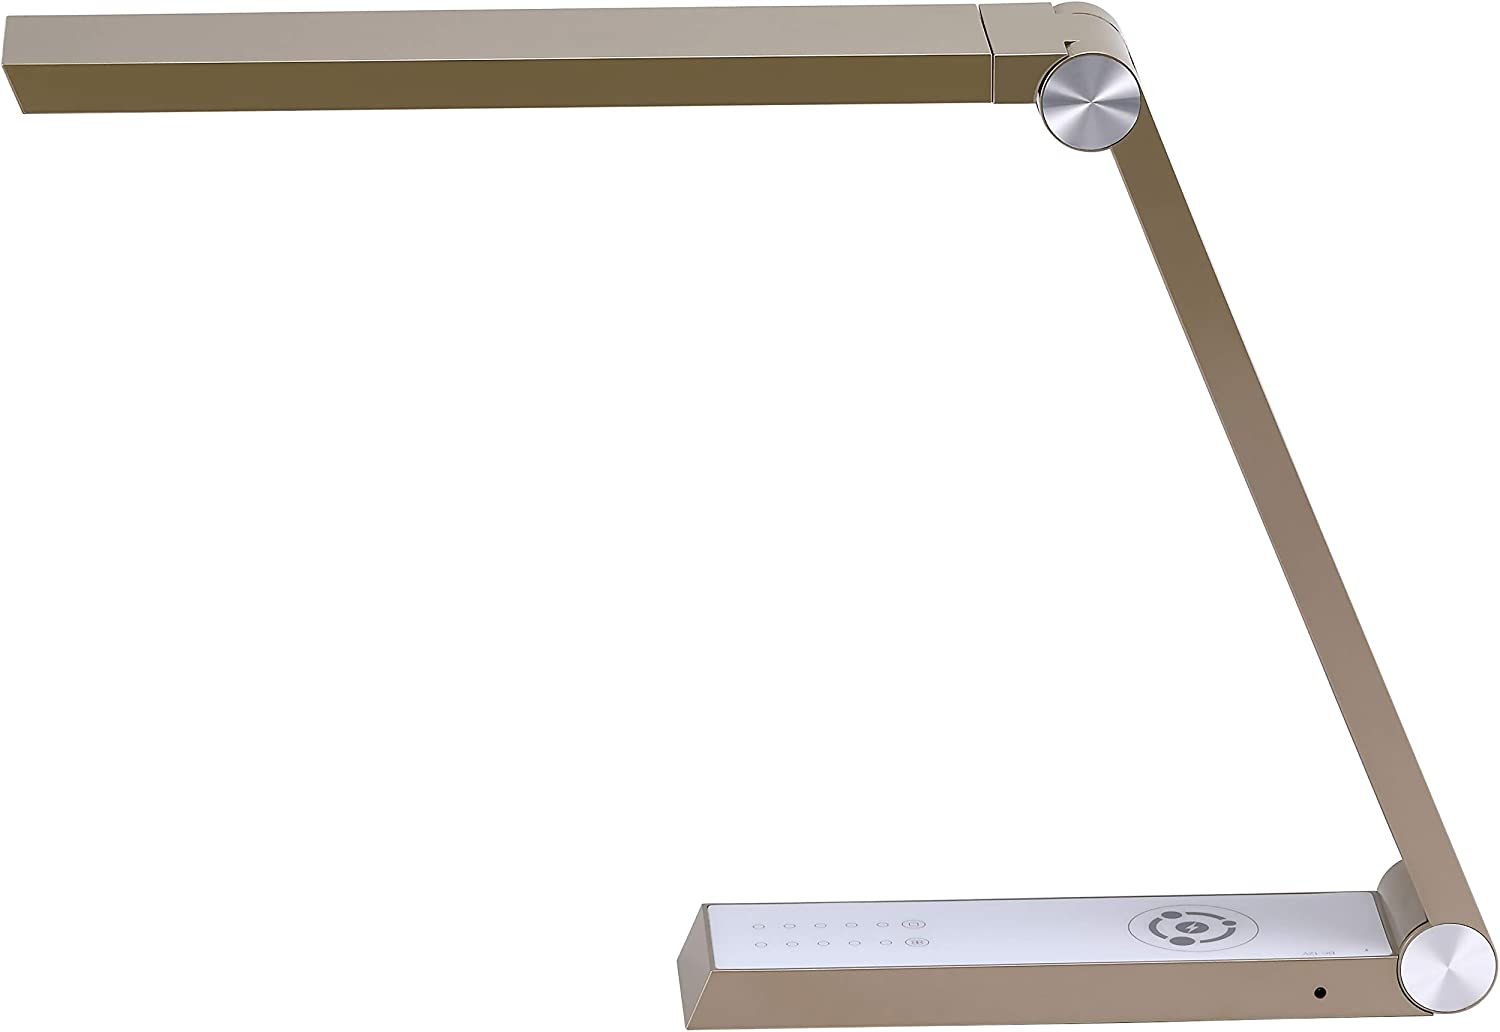 Bostitch Office Dimmable Gold Desk Lamp with Wireless Charging, USB Ports, Adjustable Brightness, Triangle Shape (VLED1825GOLD-BOS)